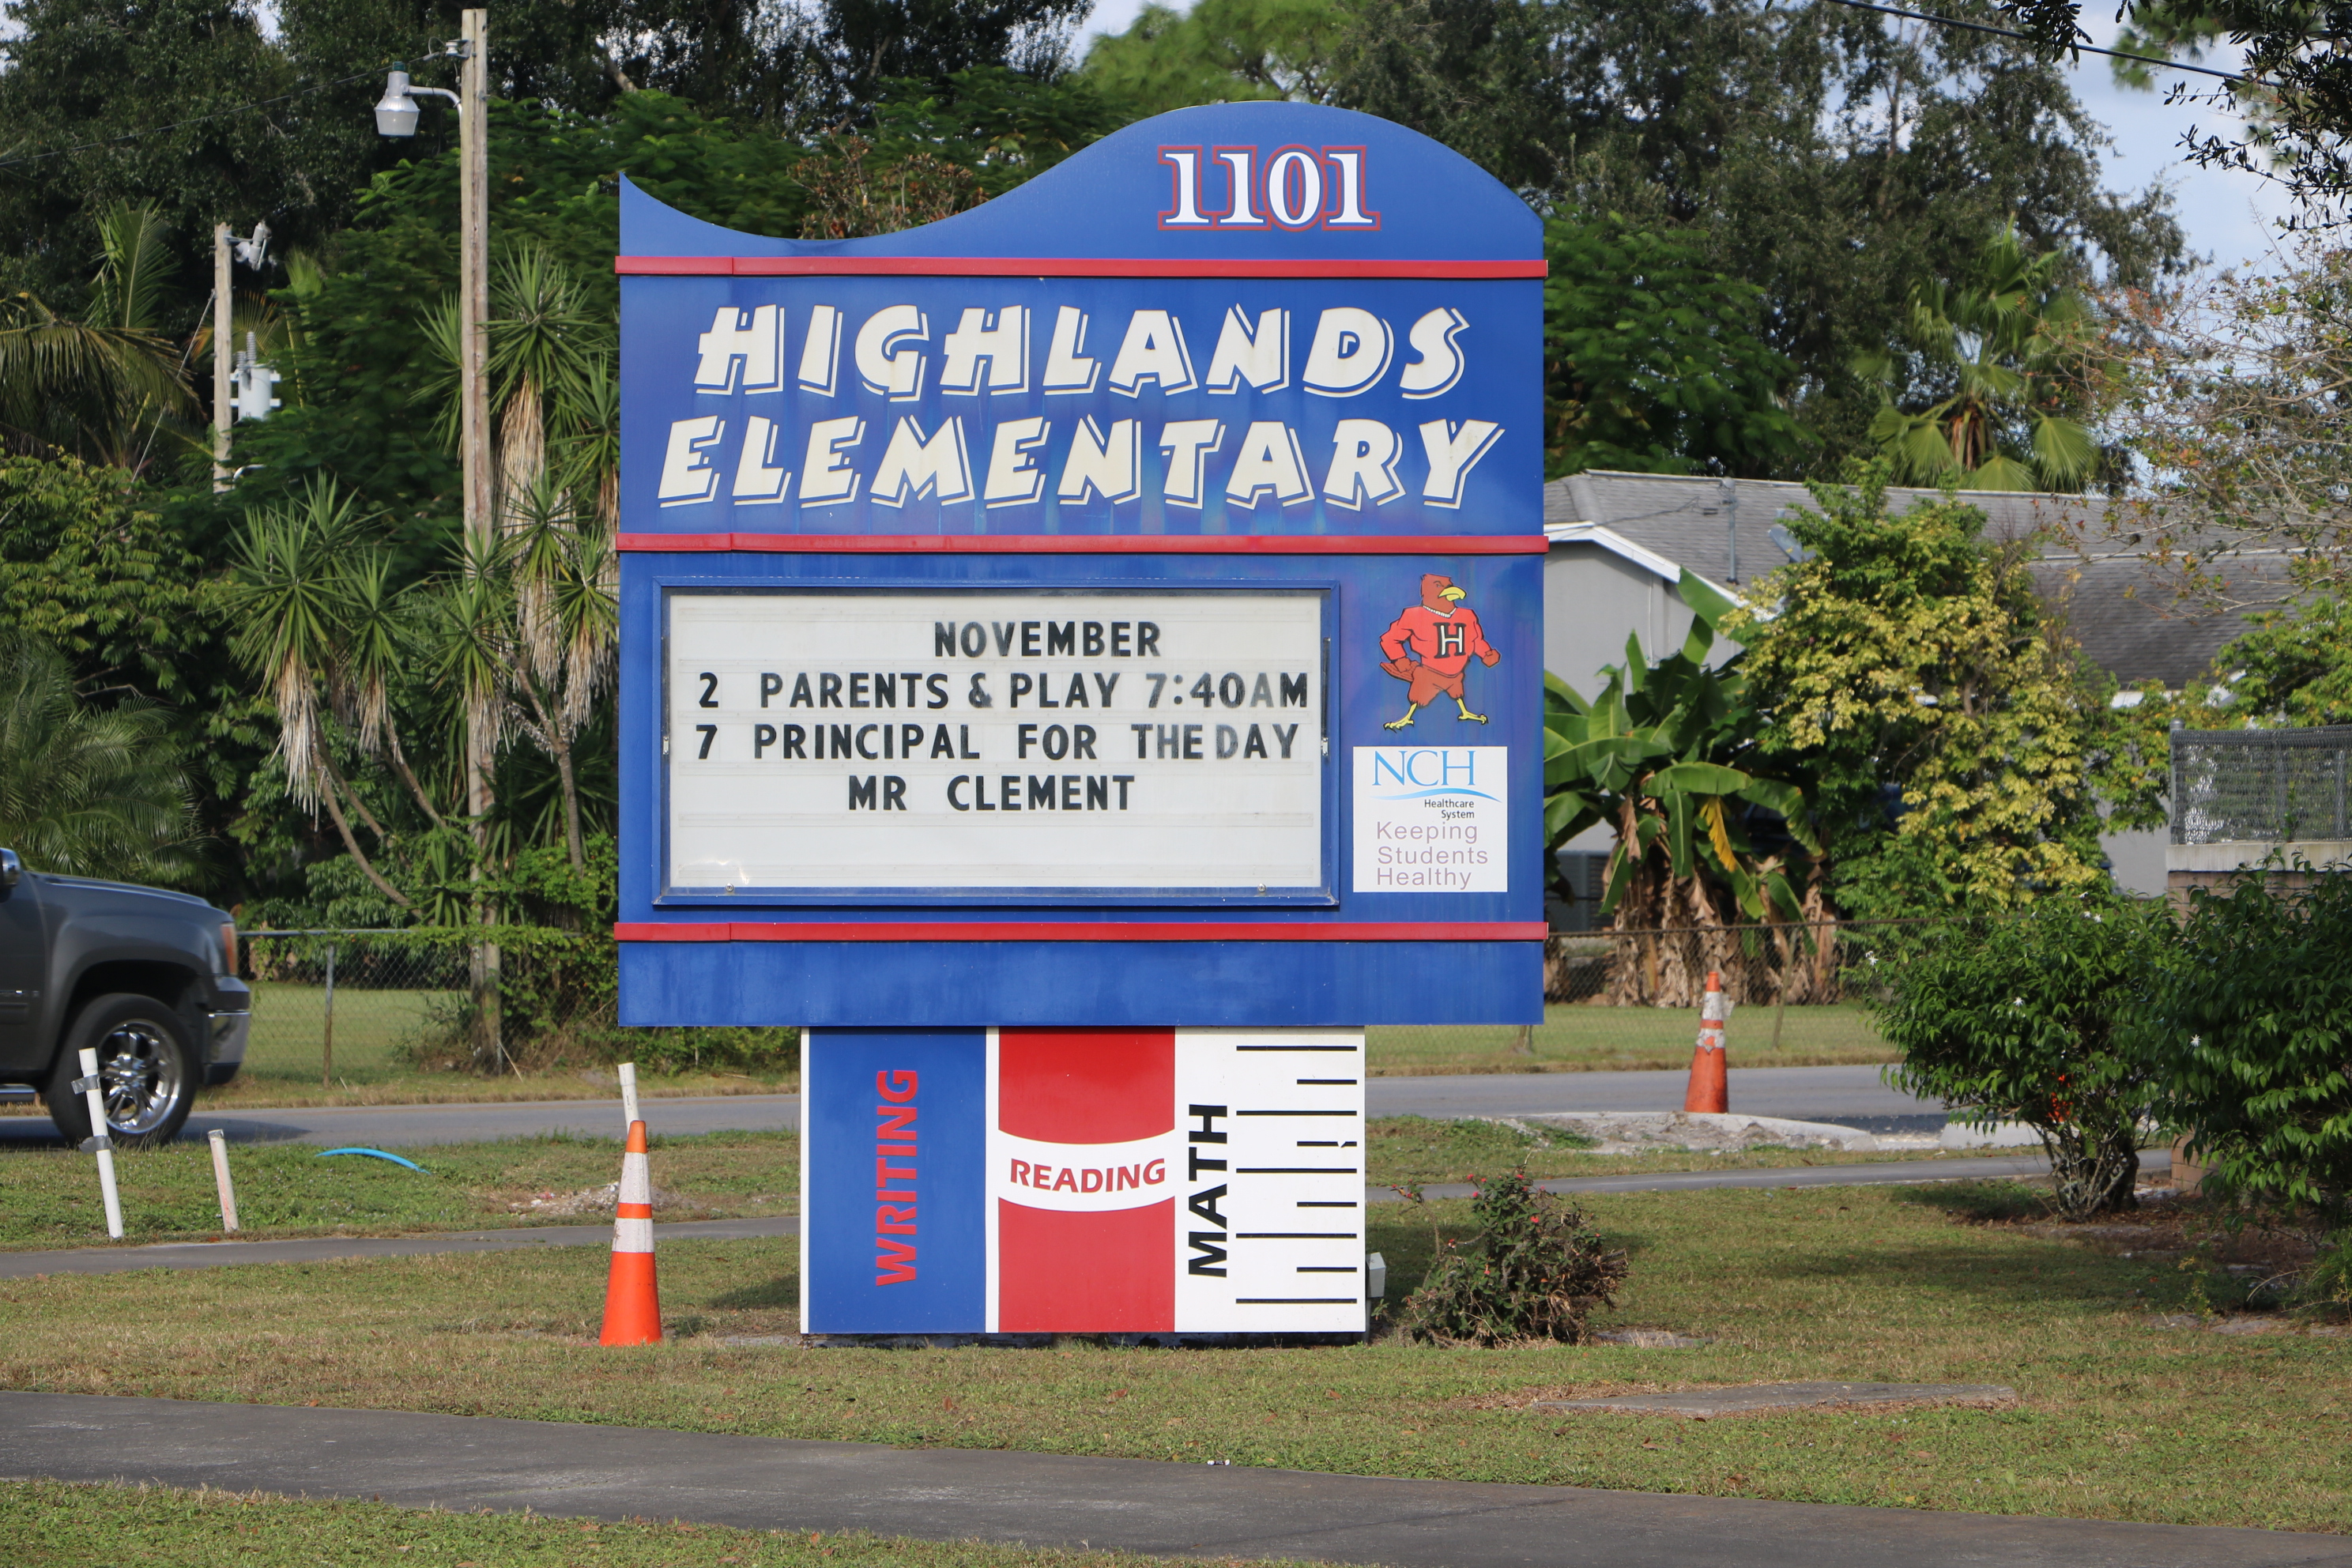 Mascot for Highland Elementary School